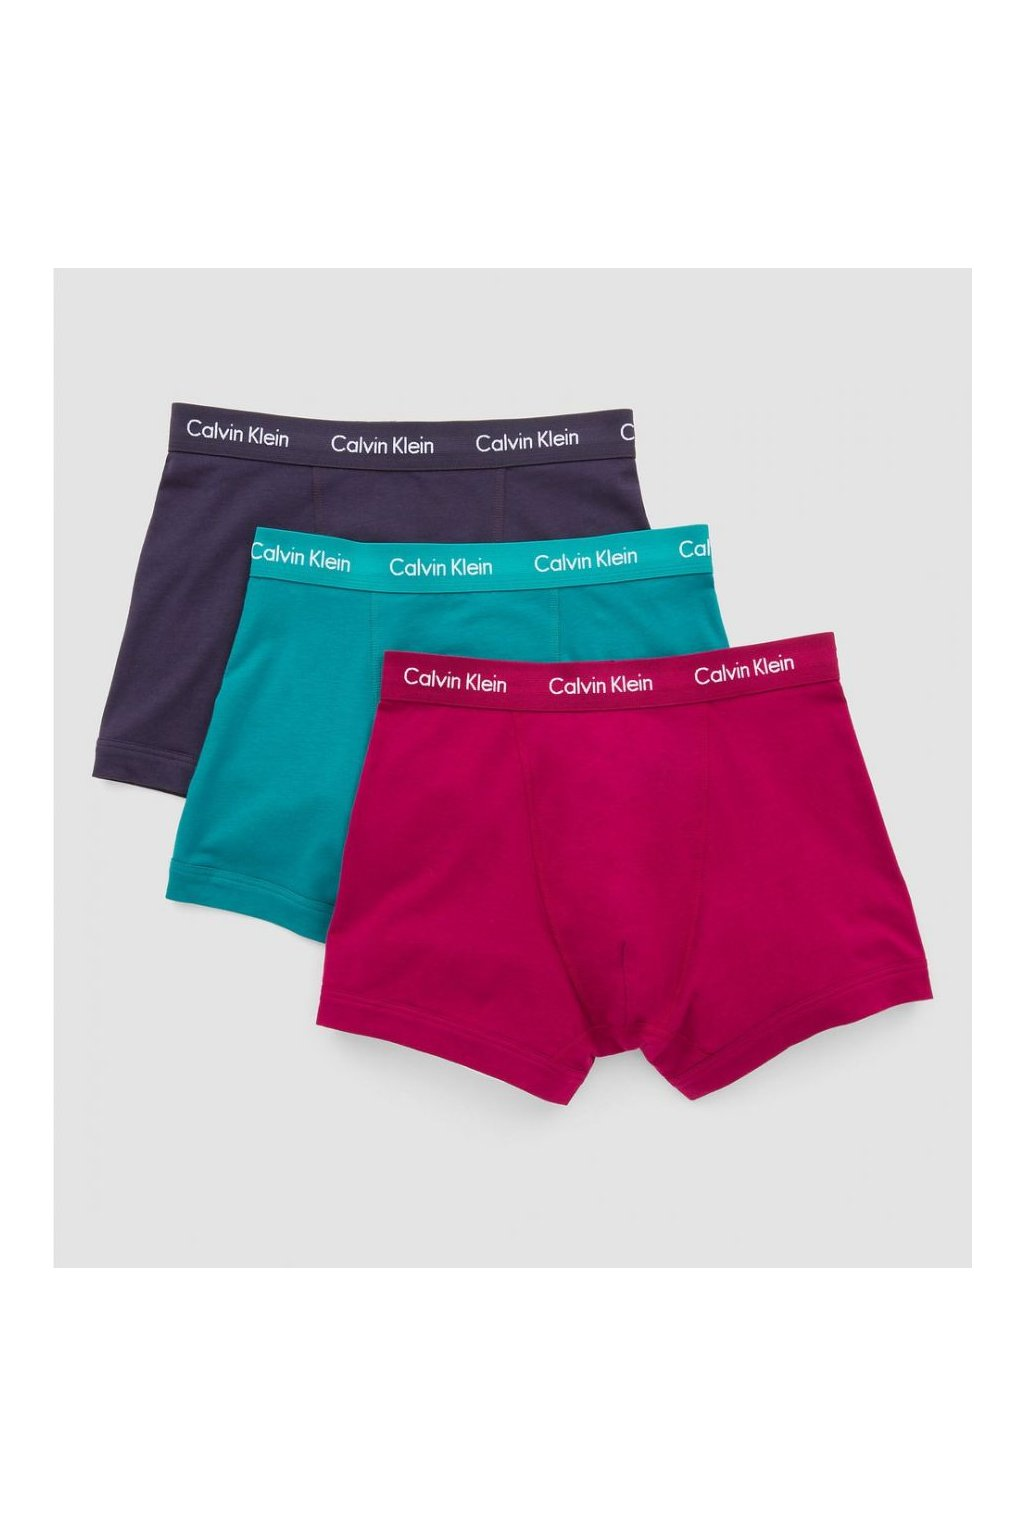 Calvin Klein 3Pack Boxerky Mesmerize, Fervent And Flux